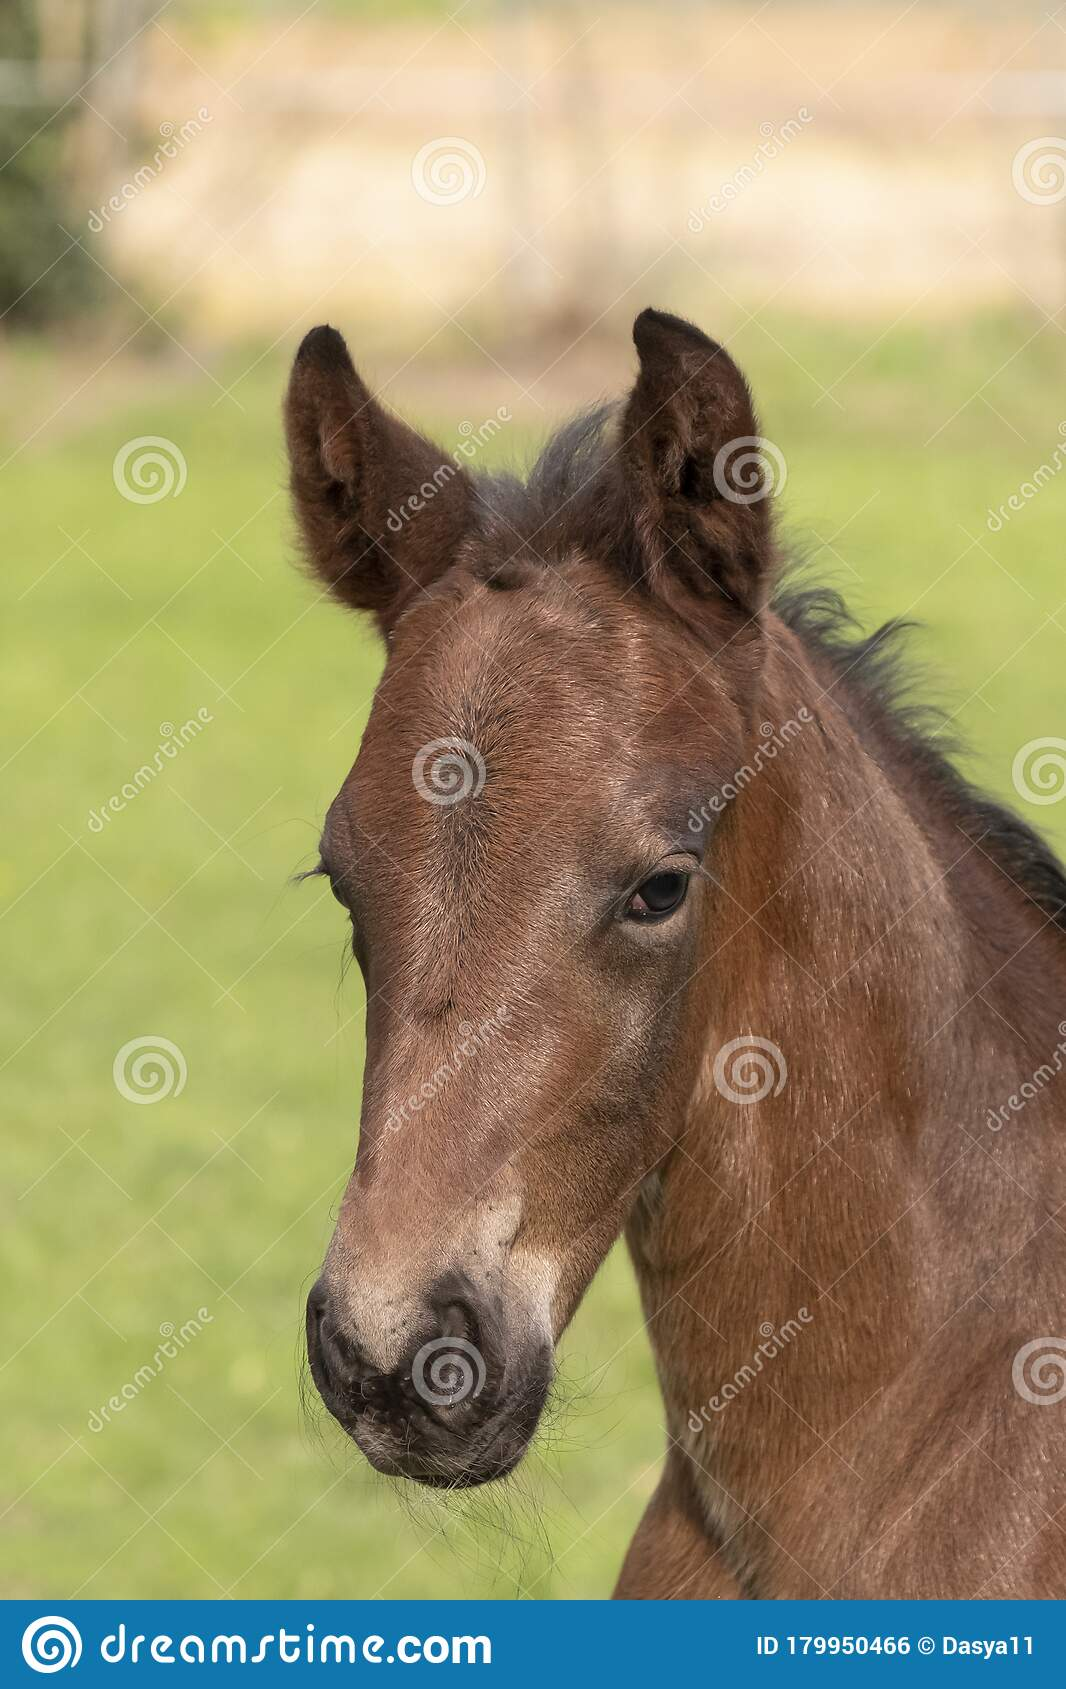 A Close Up Of A Baby Horse On Grass Background Foal Is Looking At Camera Stock Photo Image Of Equestrian Enjoy 179950466